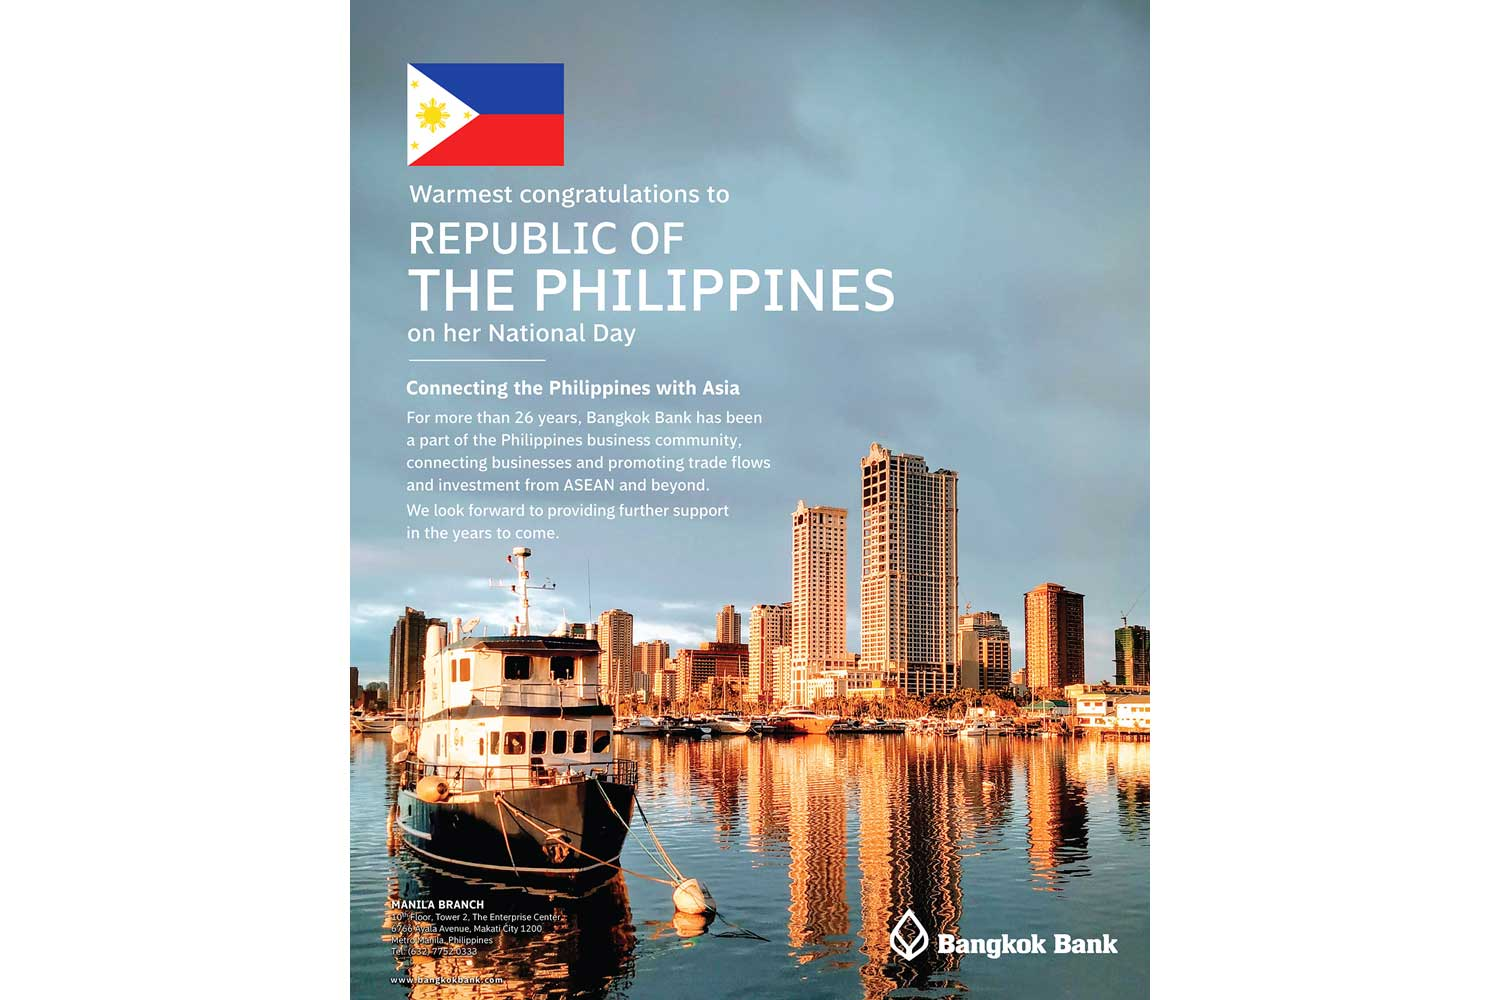 Congratulations to the Philippines people on the 123rd anniversary of their Independence, 12 June